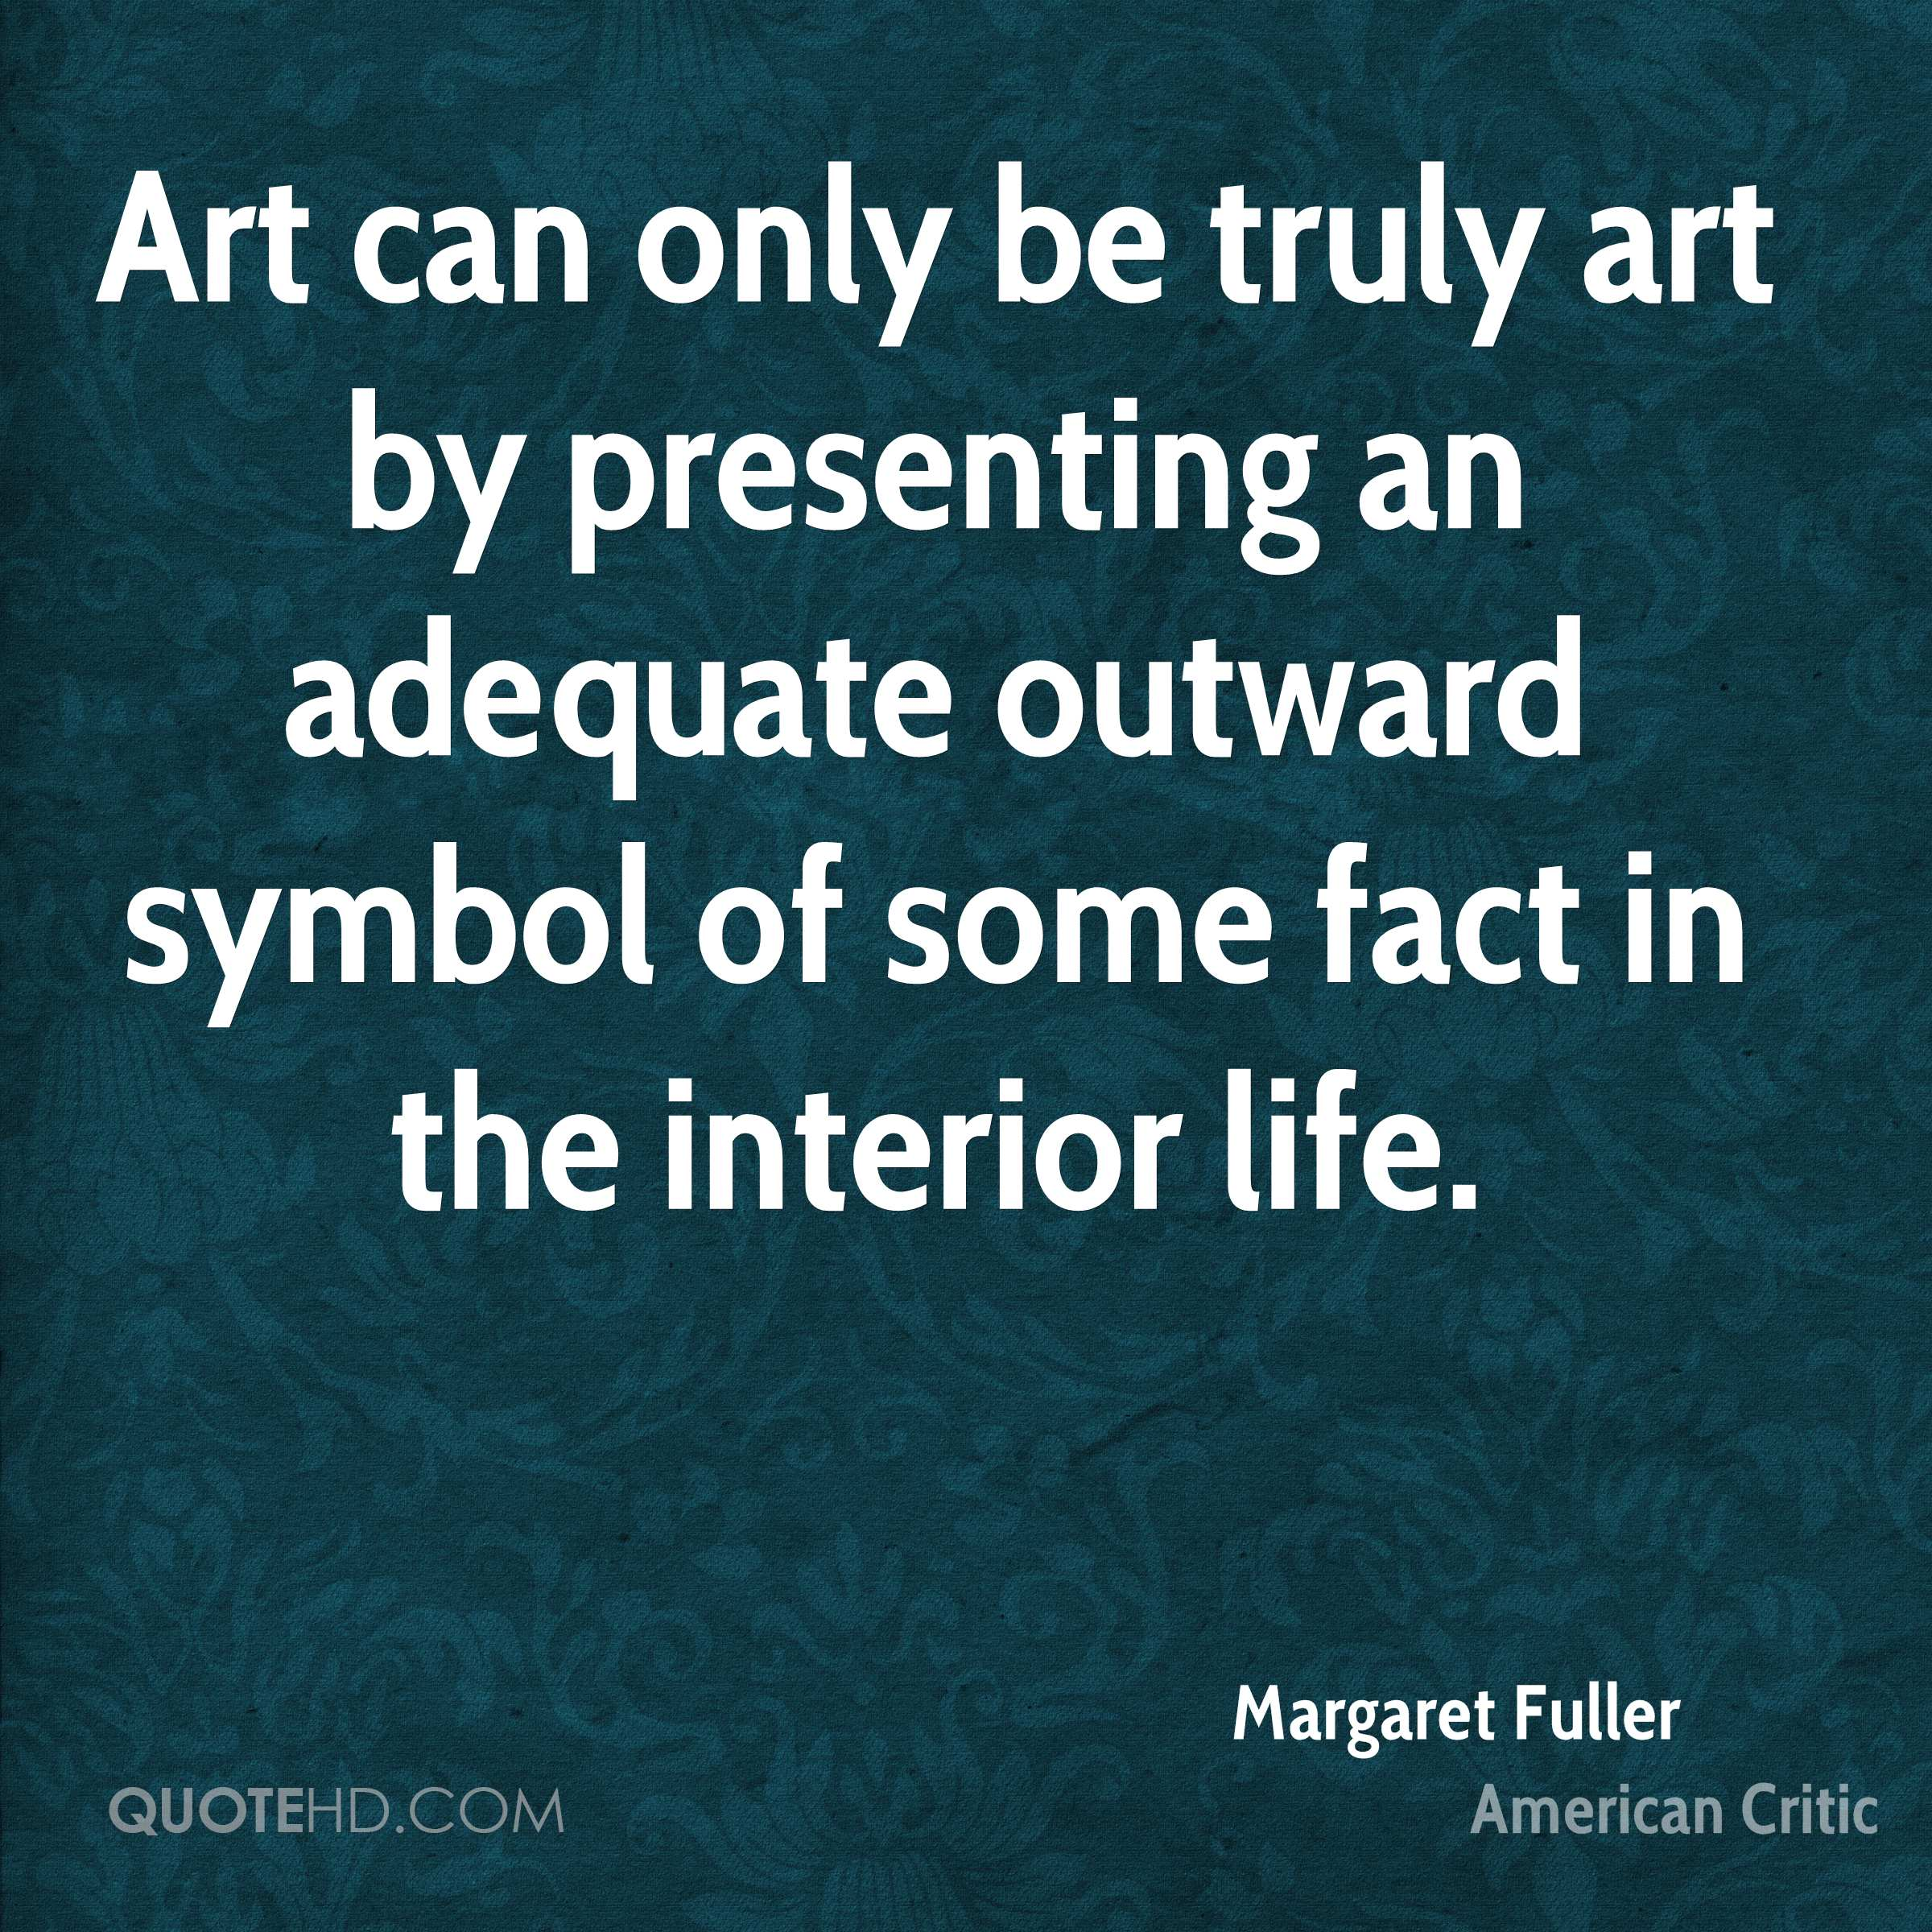 Art can only be truly art by presenting an adequate outward symbol of some fact in the interior life.